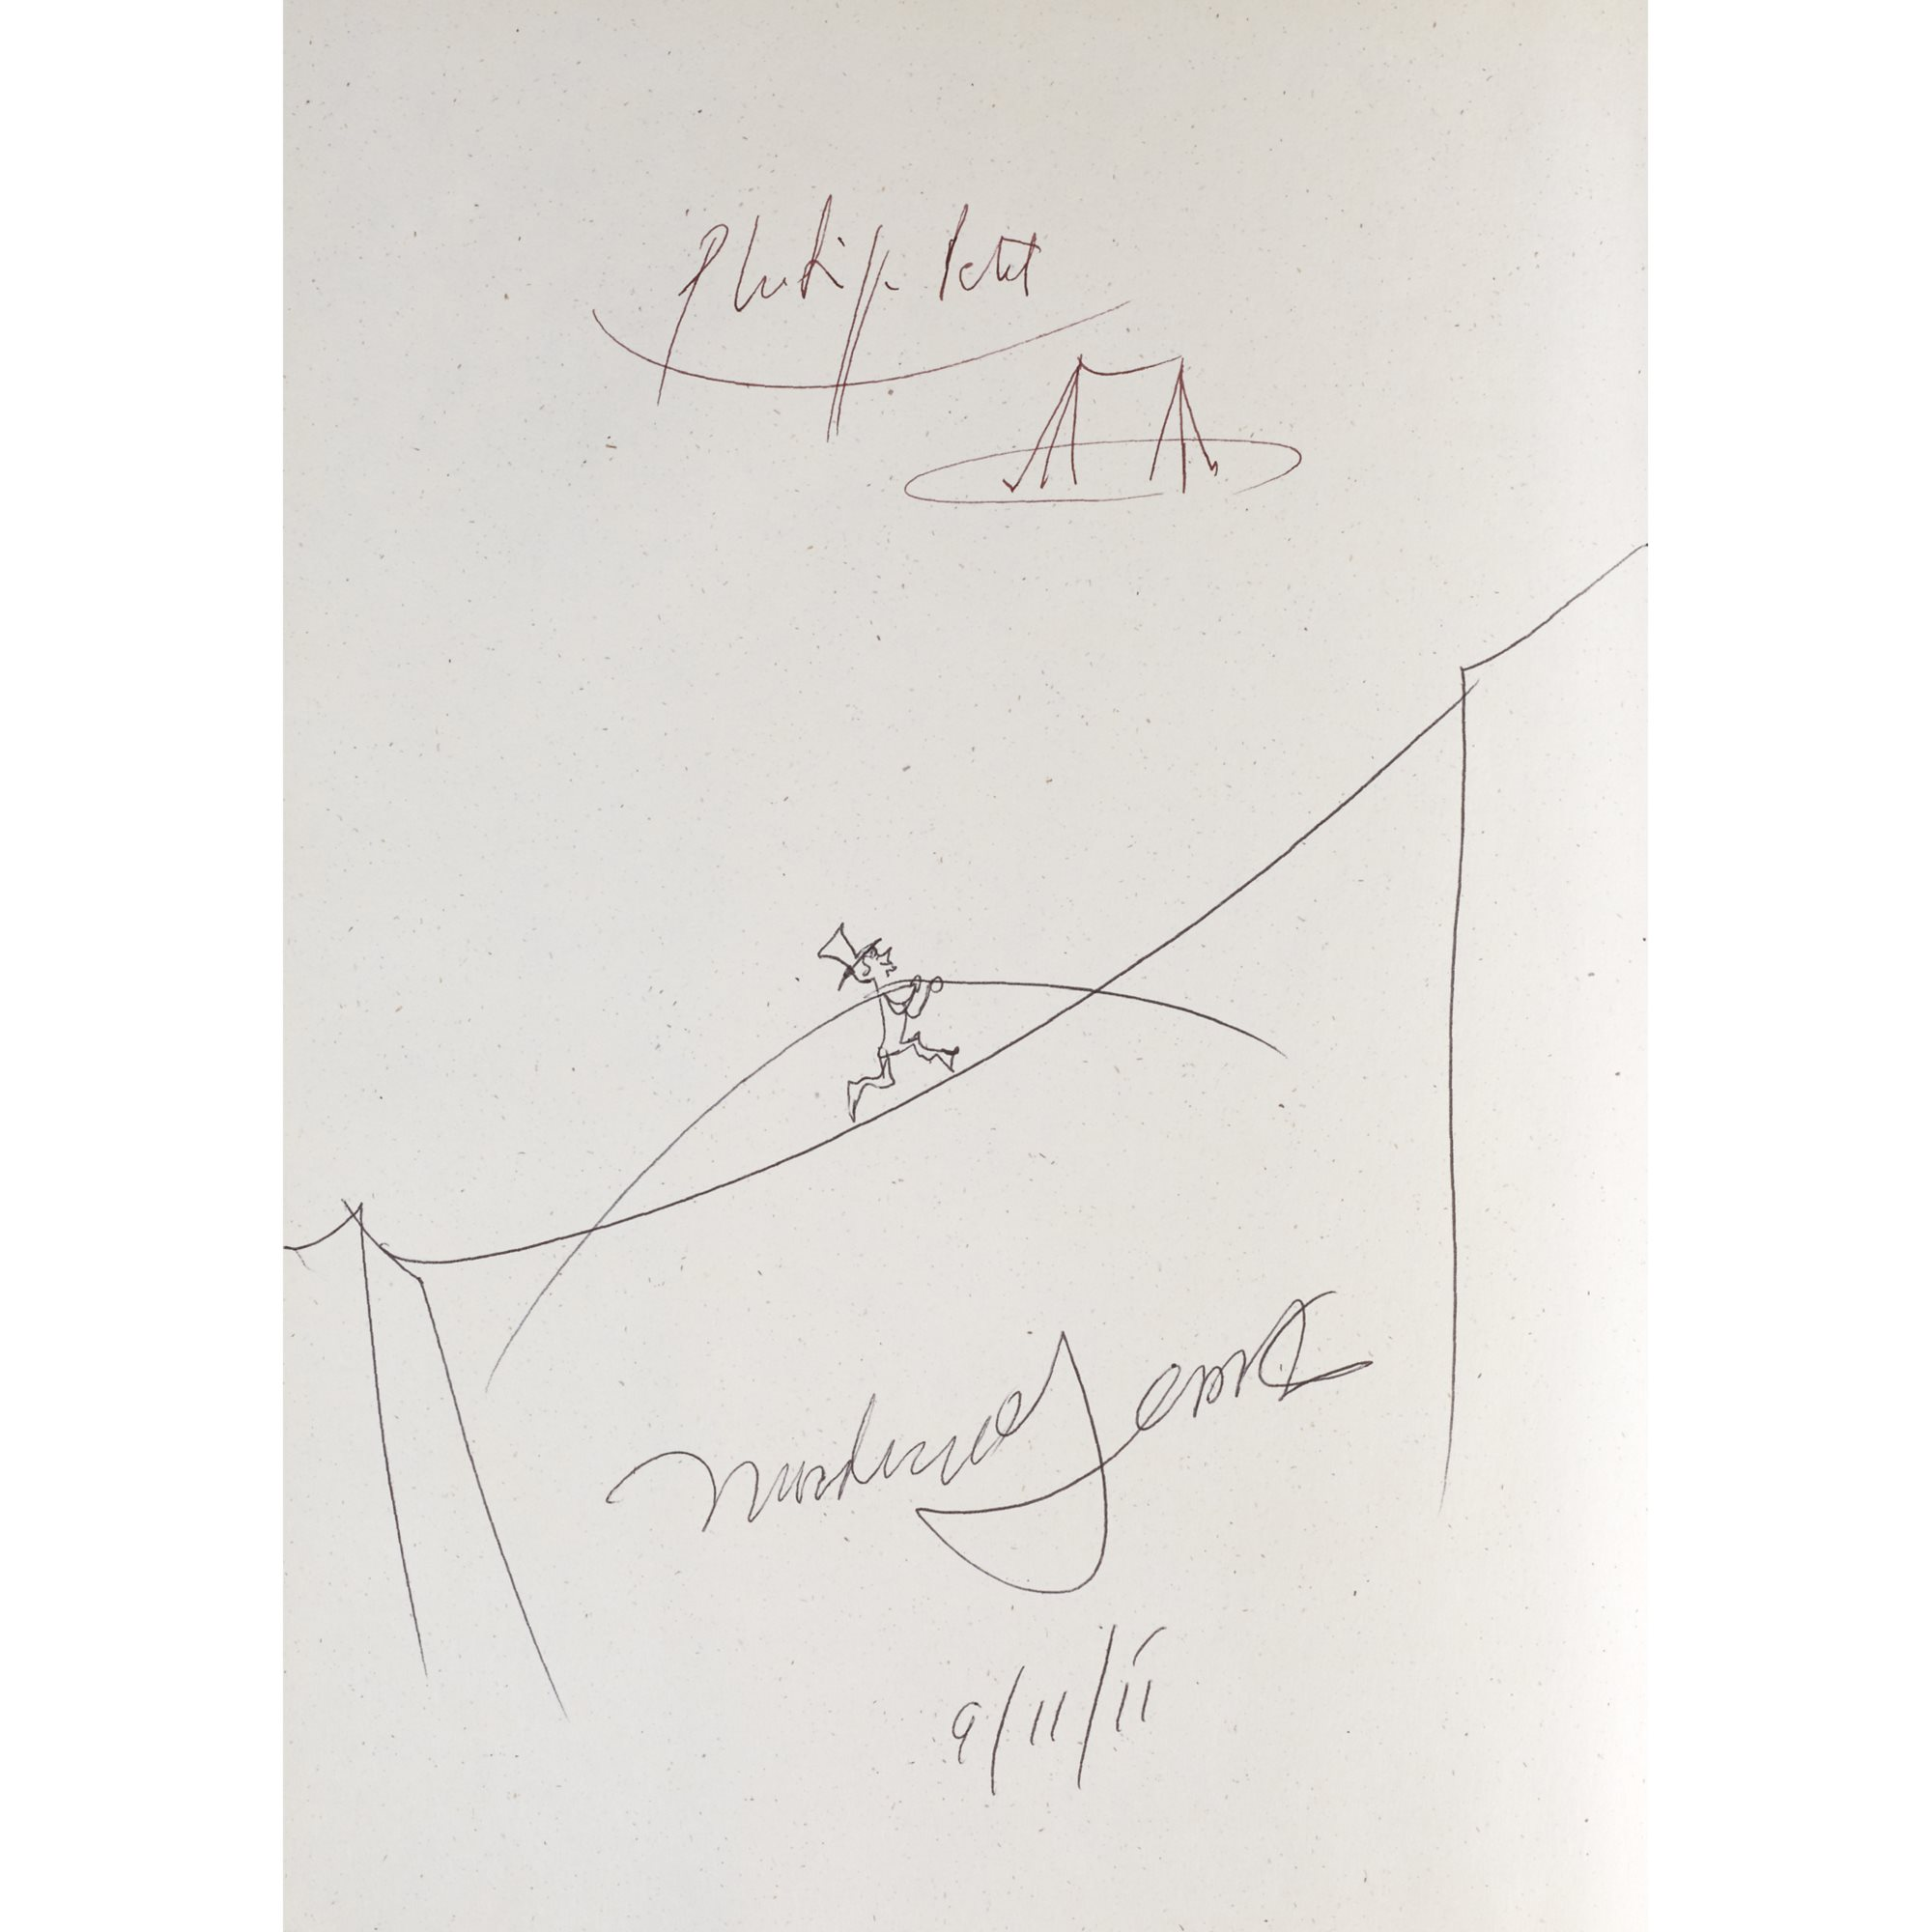 The Man Who Walked Between the Towers Brookfield, Connecticut: Roaring Brook Press, (2003). First edition, illustrated by the author. Signed and doodled by Gerstein and by Philippe Petit, the subject of the book. Winner of the 2004 Caldecott Medal.